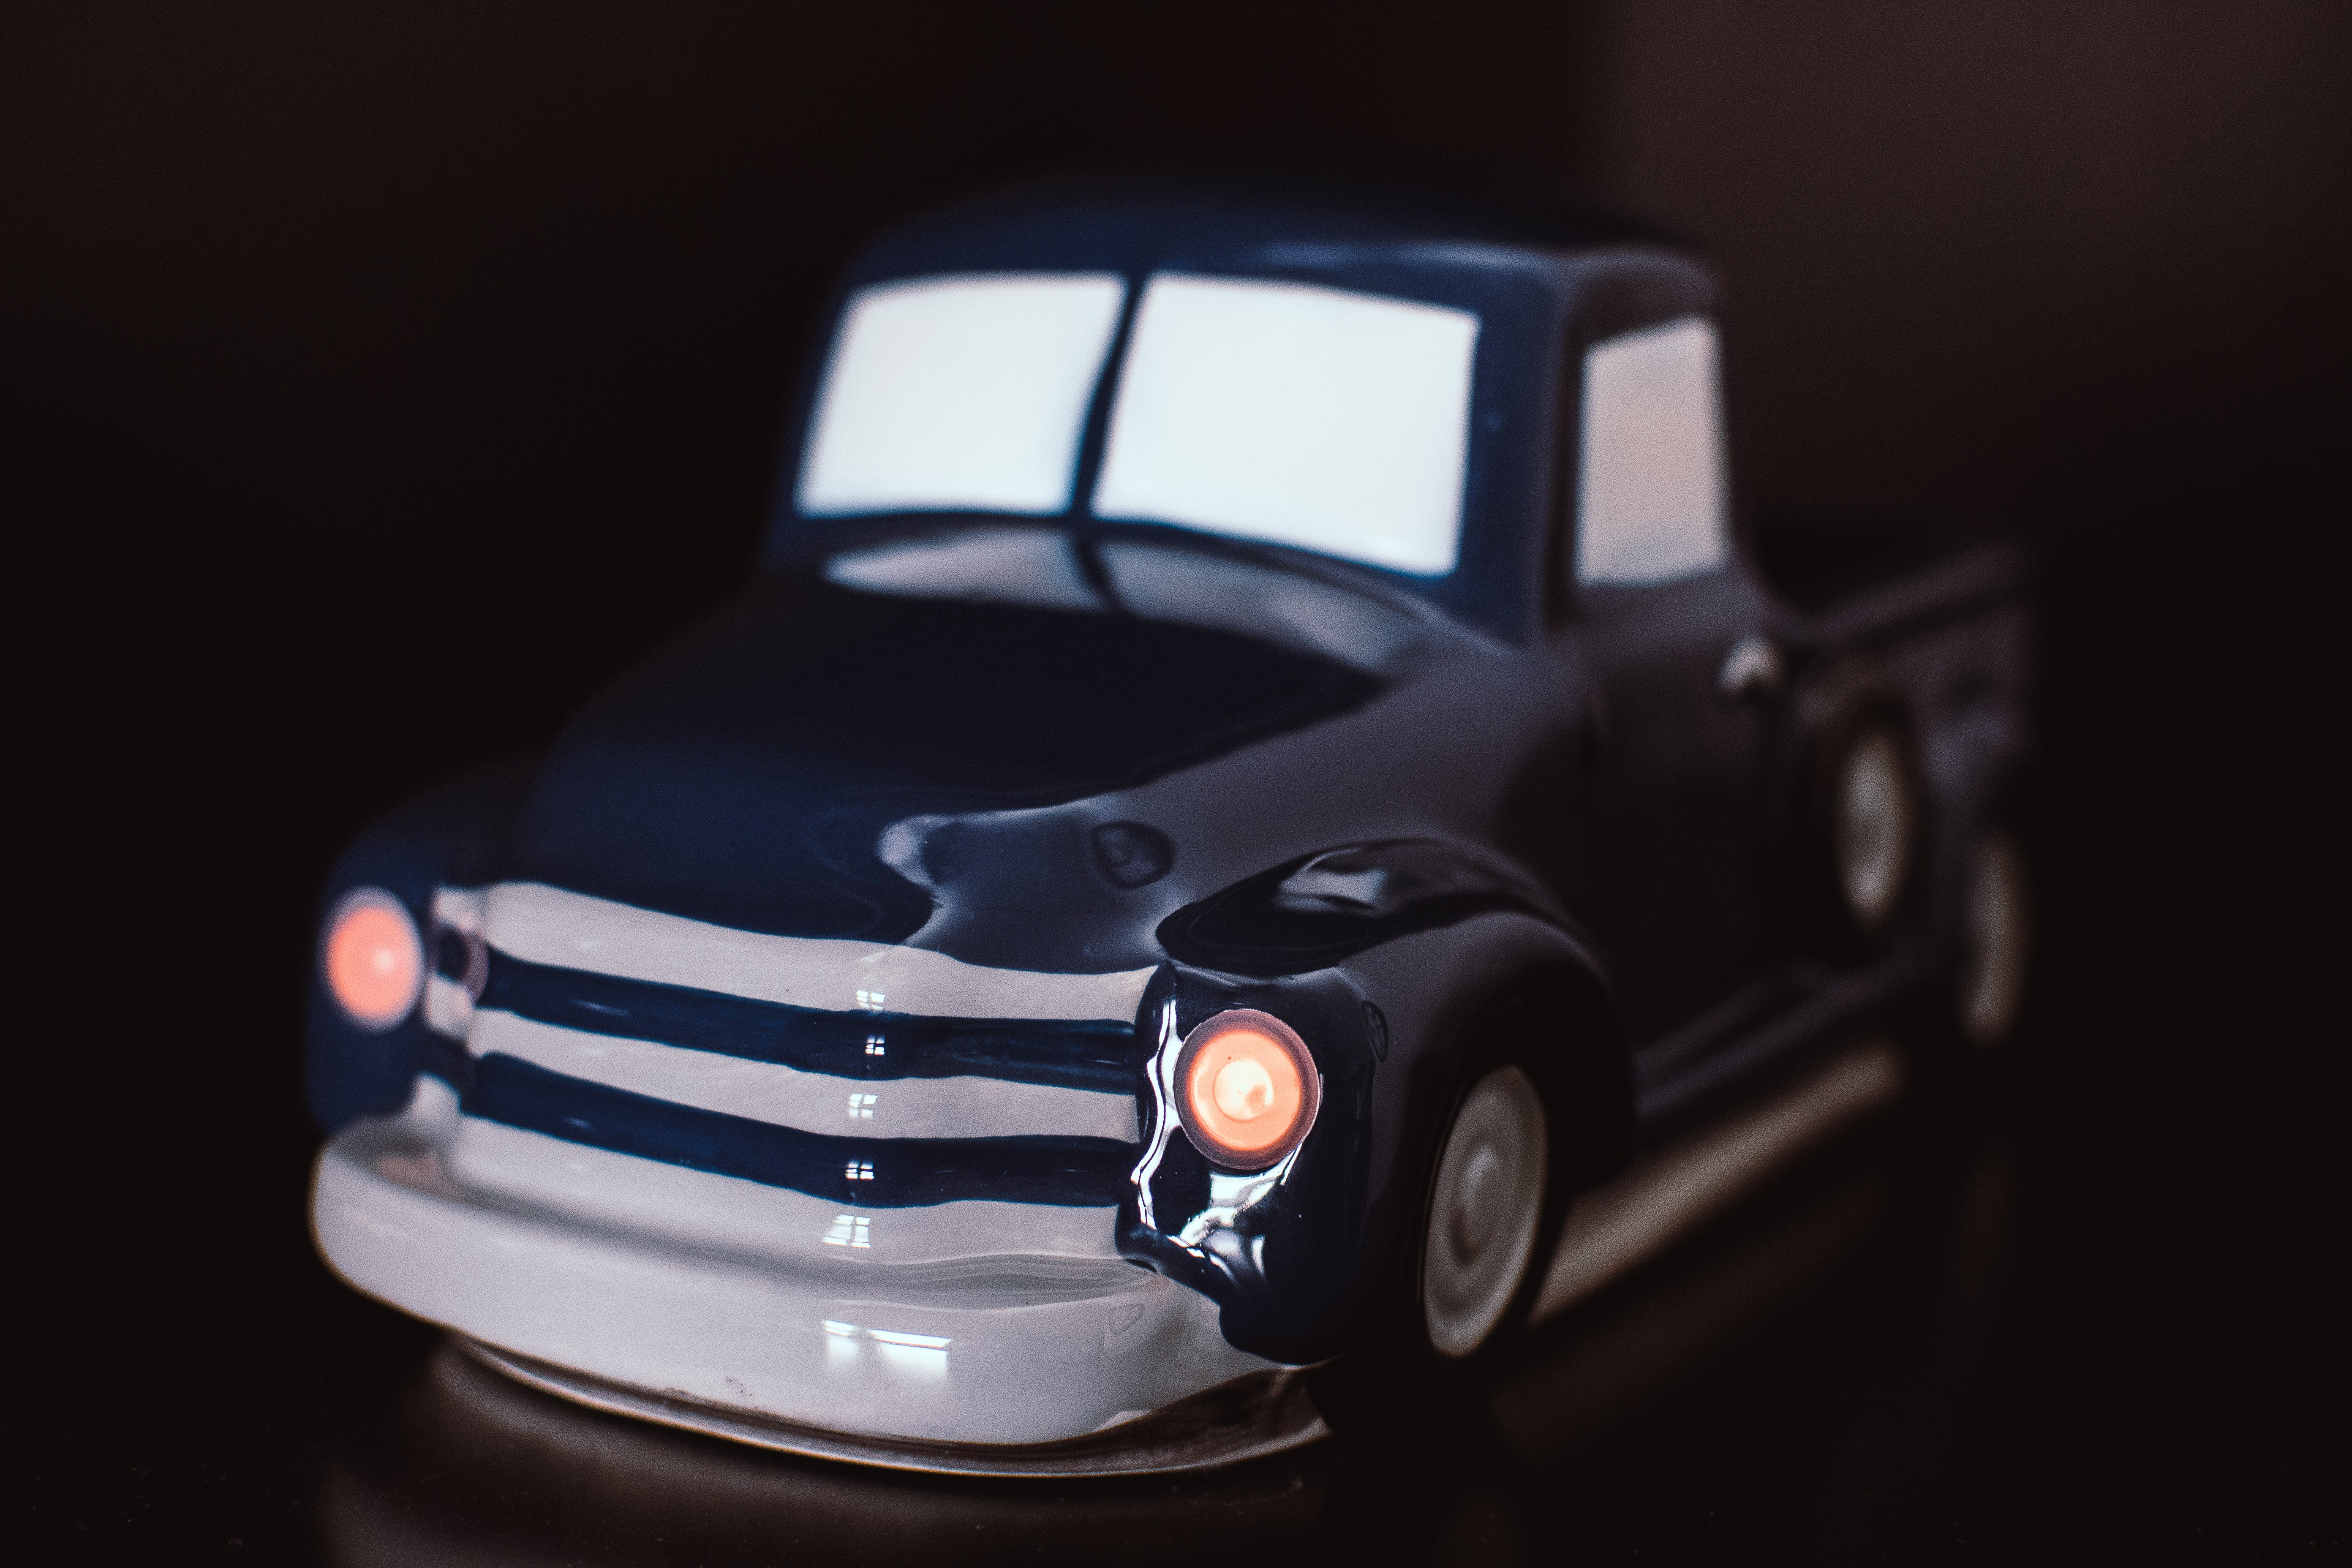 Free stock photo of Toy Truck